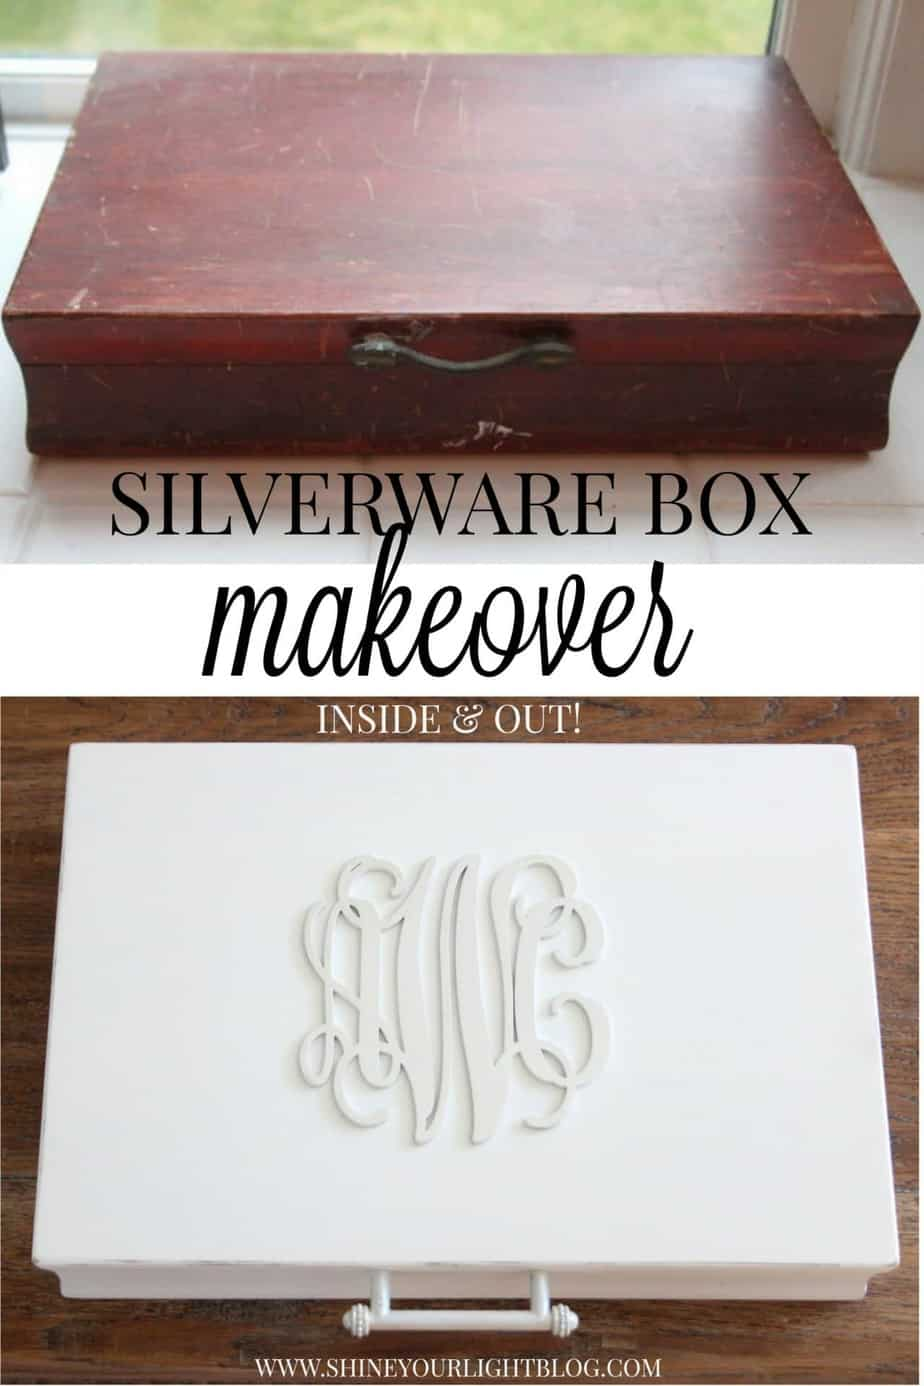 An old silverware box is given a makeover inside and out.